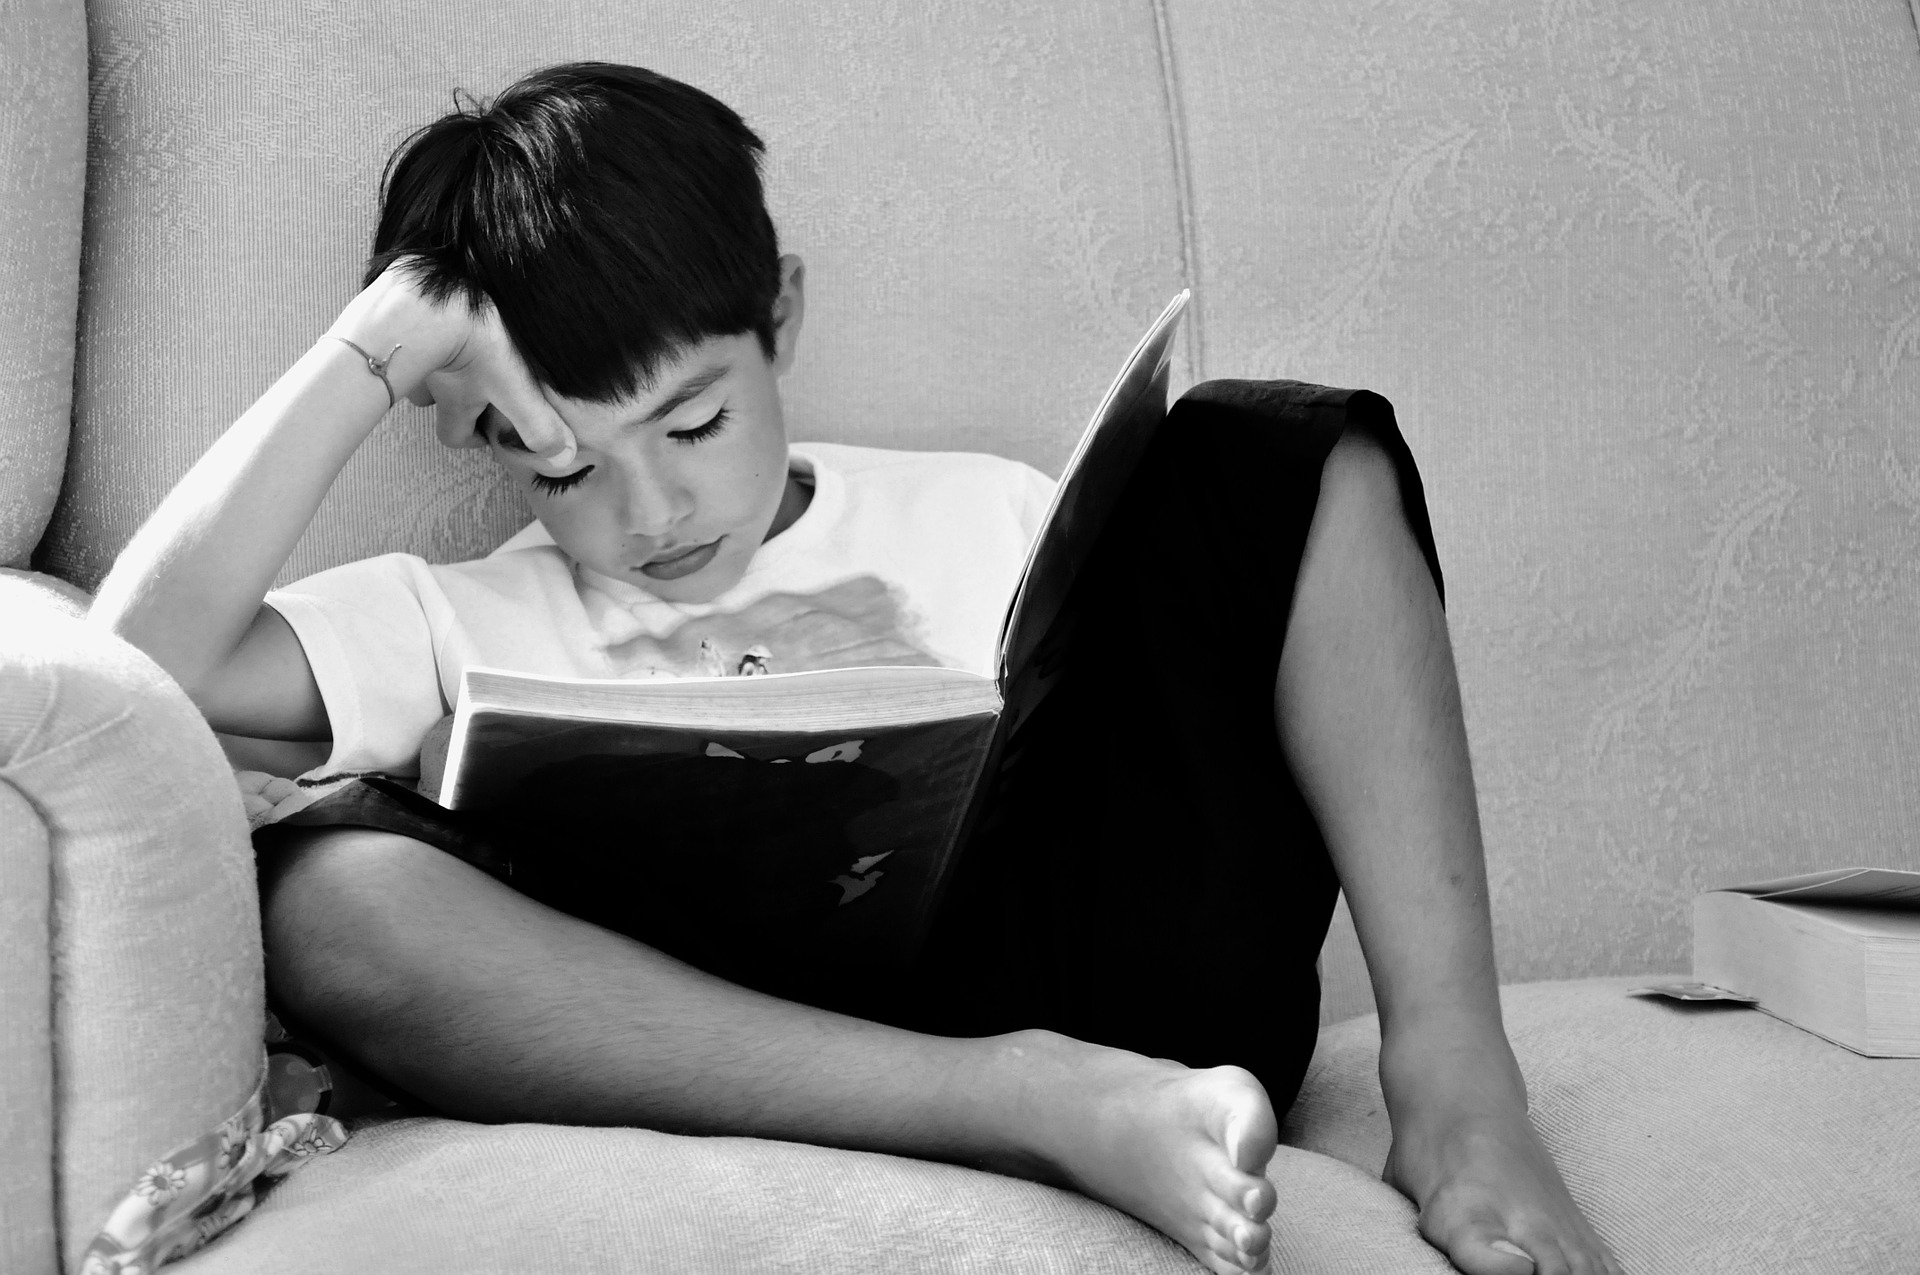 Young boy on a couch, reading a book